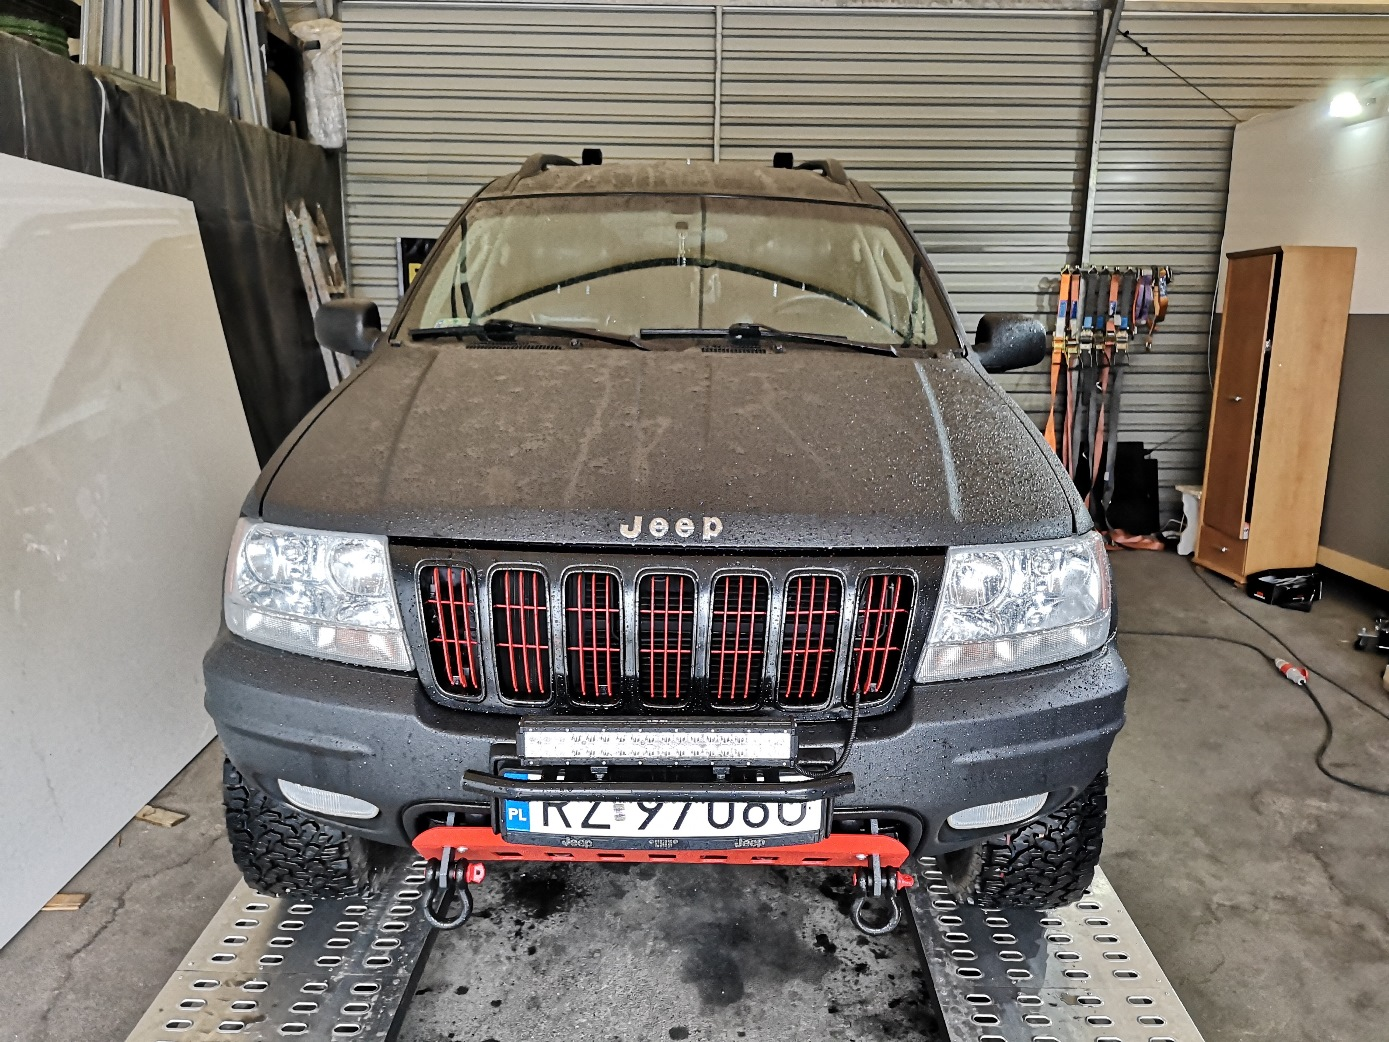 Jeep Grand Cherokee 2.7 CRD 163KM >> 211KM 460Nm